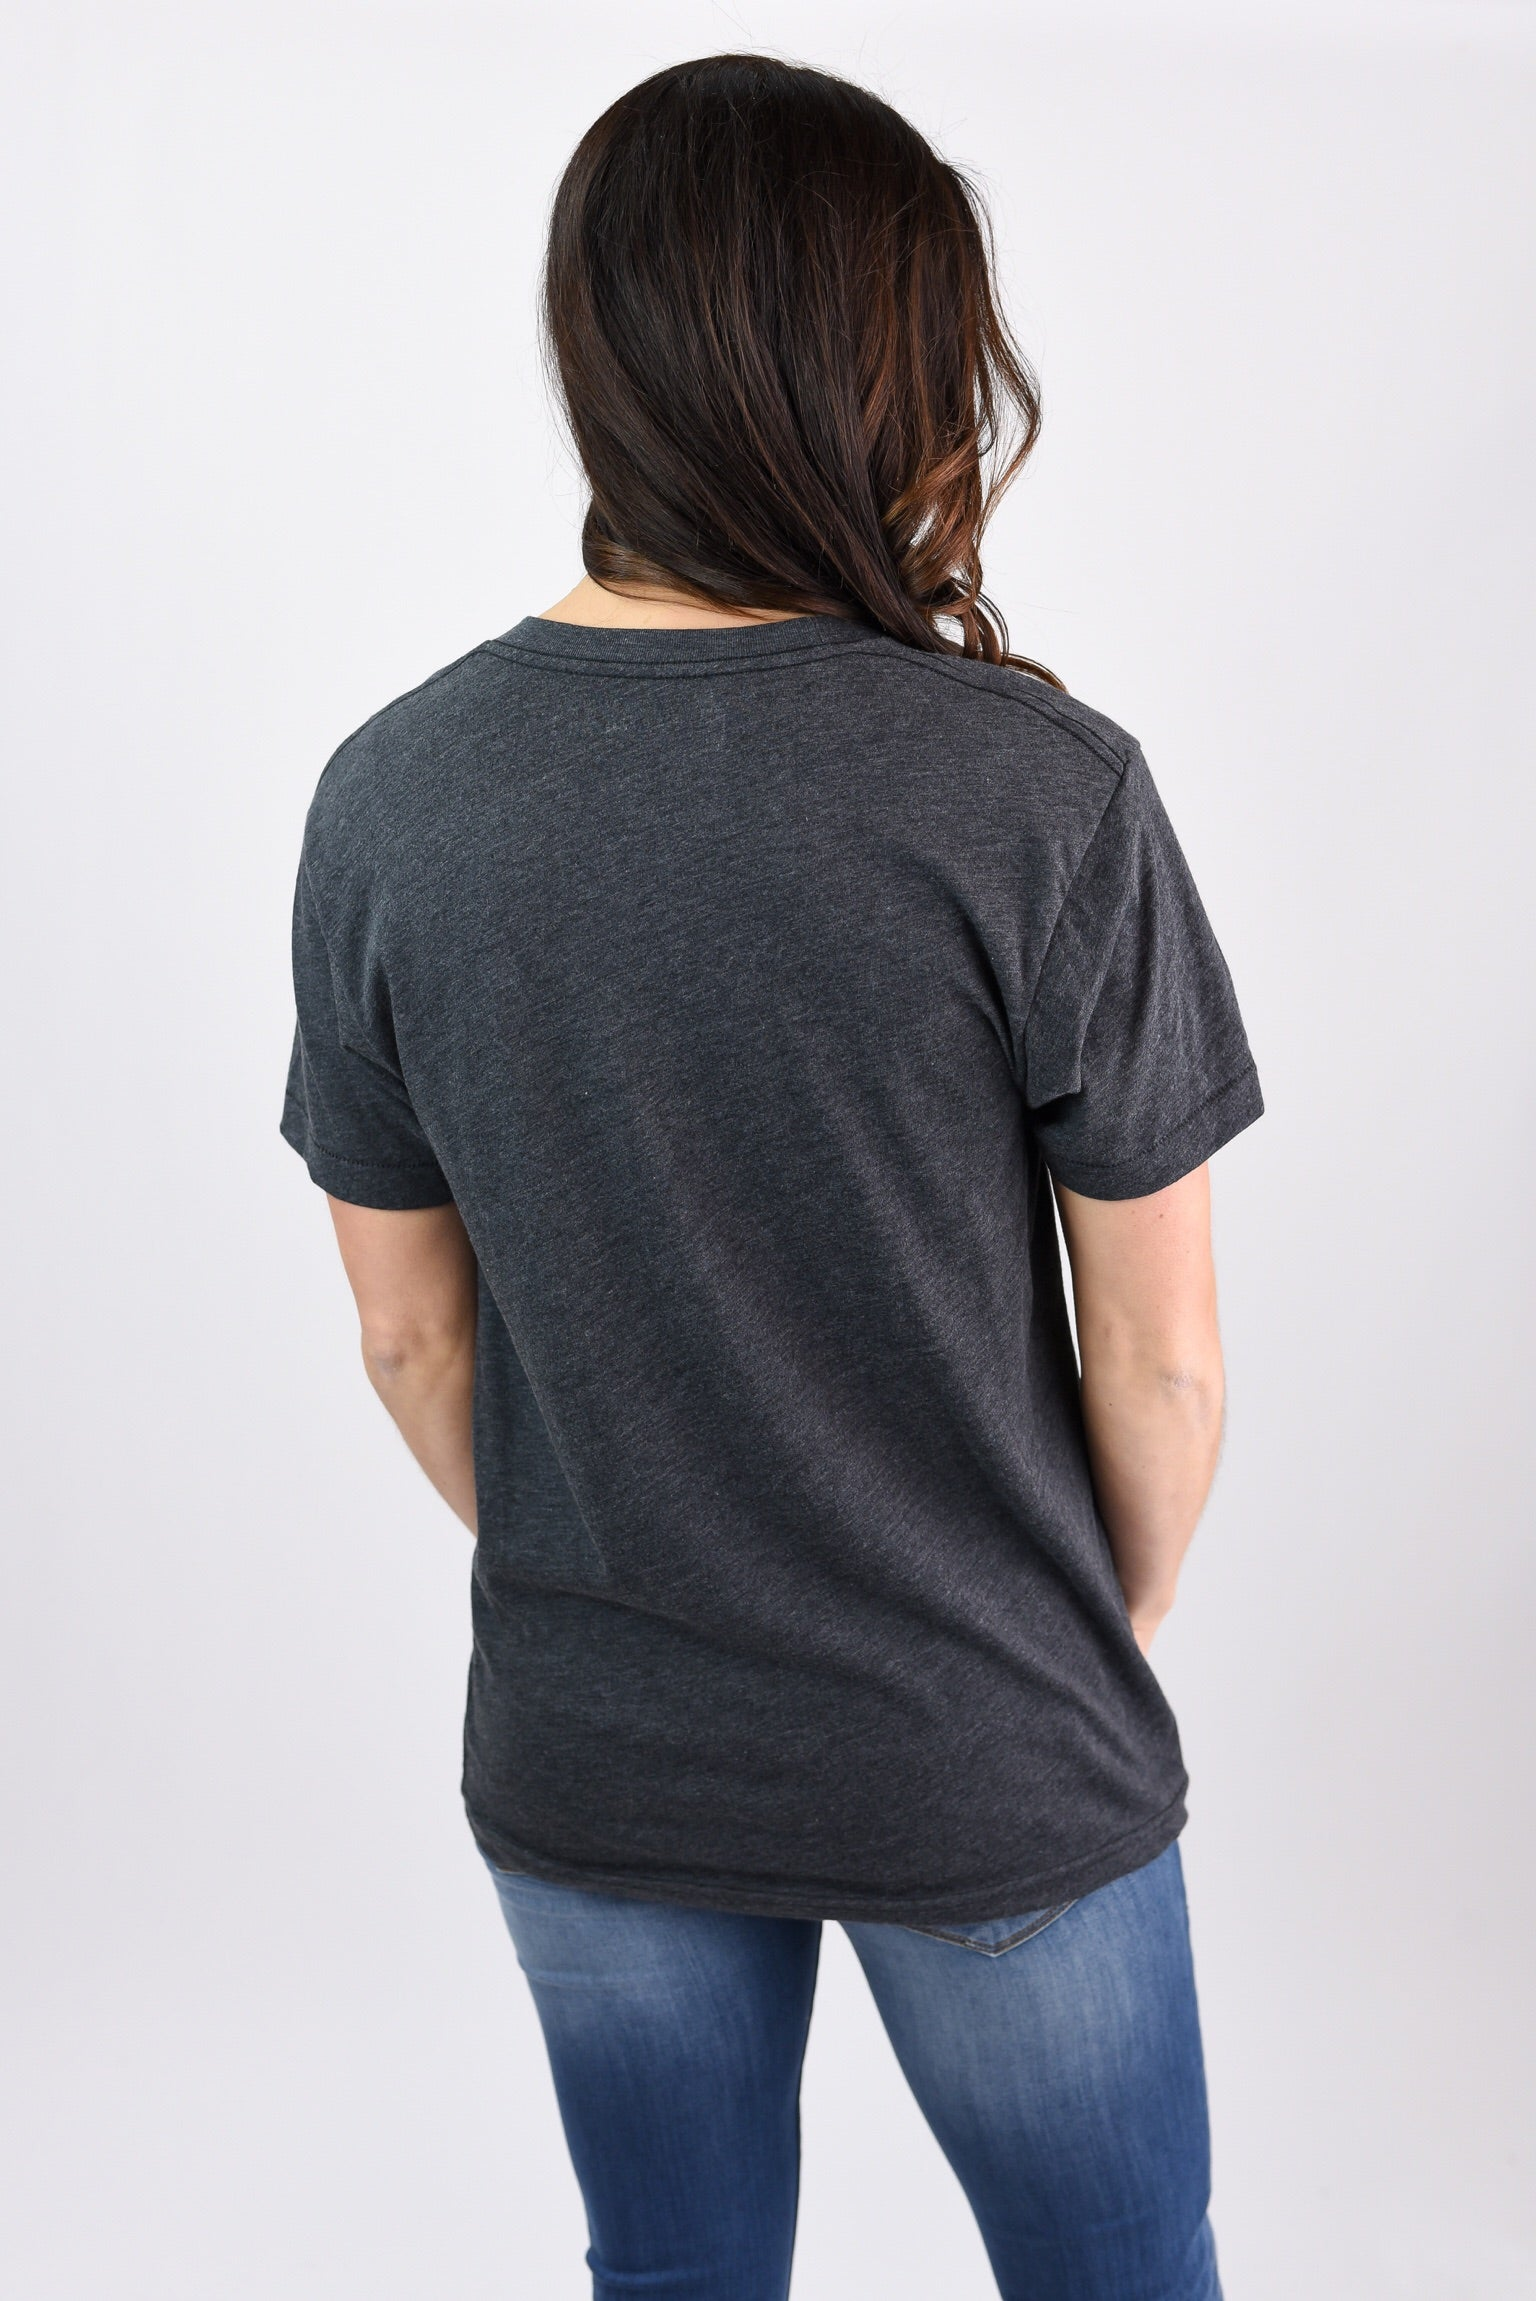 The Home Tee Charcoal Crew Neck